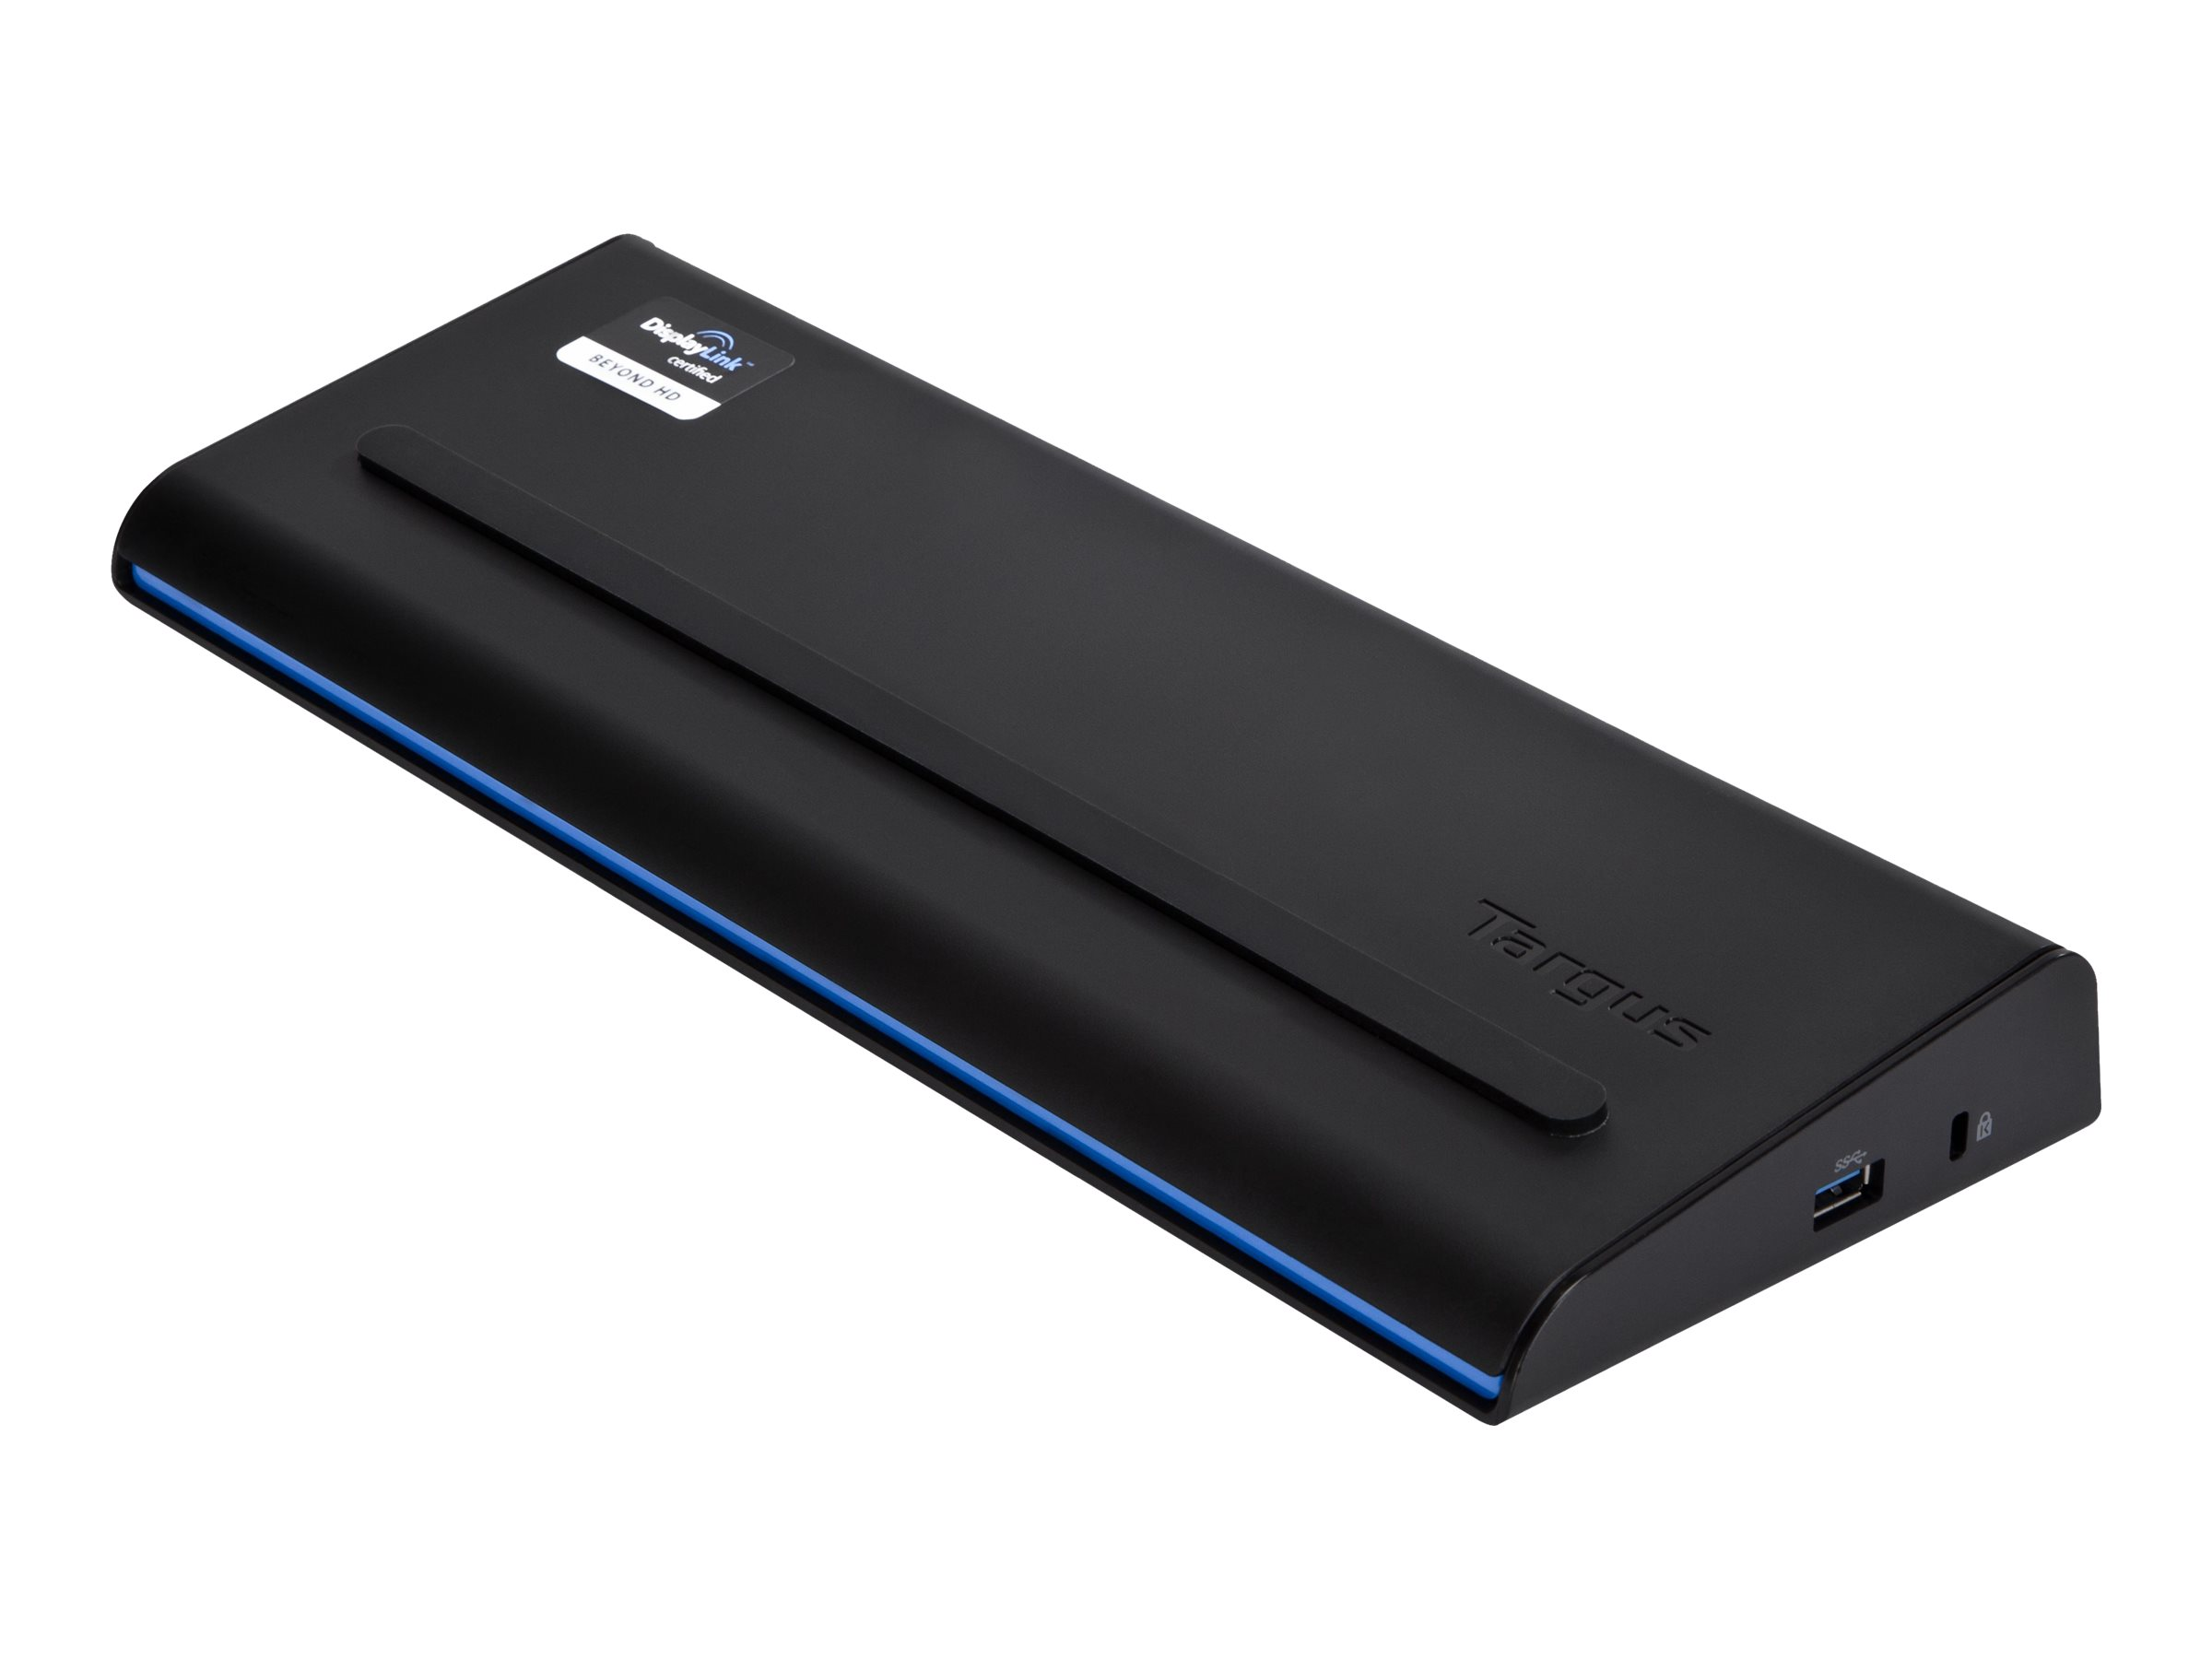 Targus USB 3.0 SuperSpeed Dual Video Docking Station with Power - docking station